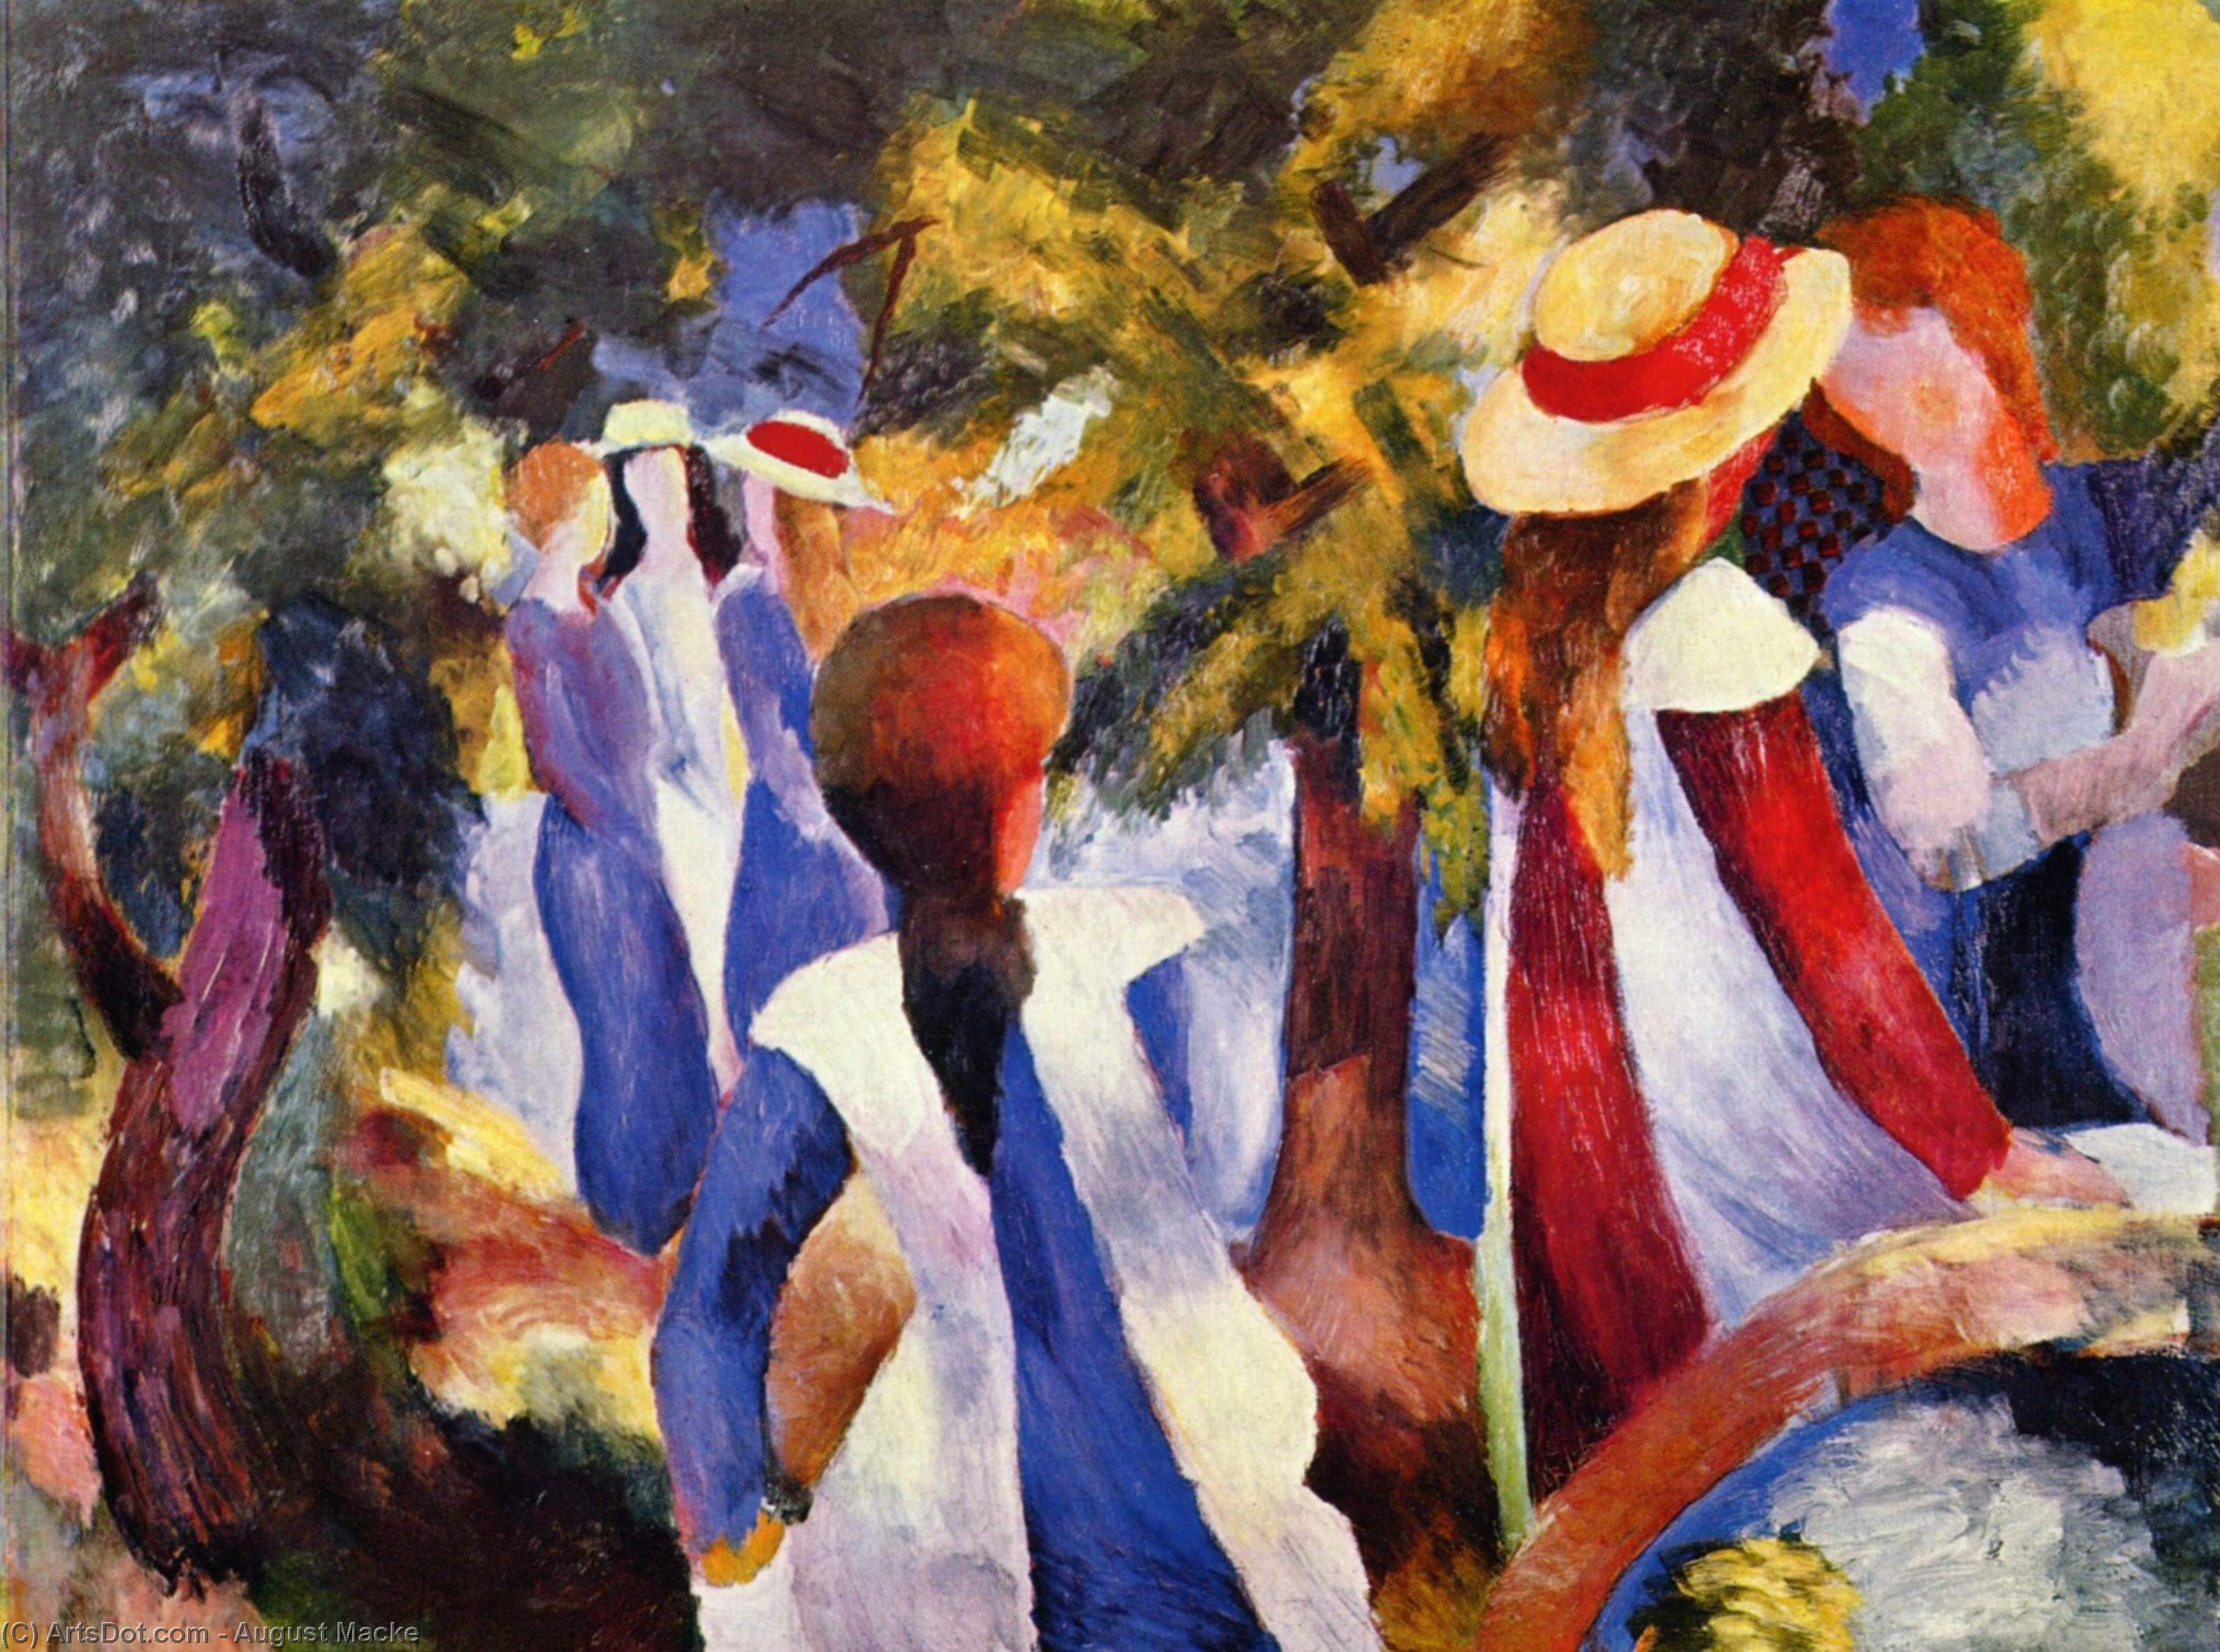 Wikioo.org - The Encyclopedia of Fine Arts - Painting, Artwork by August Macke - Girl in the greenery